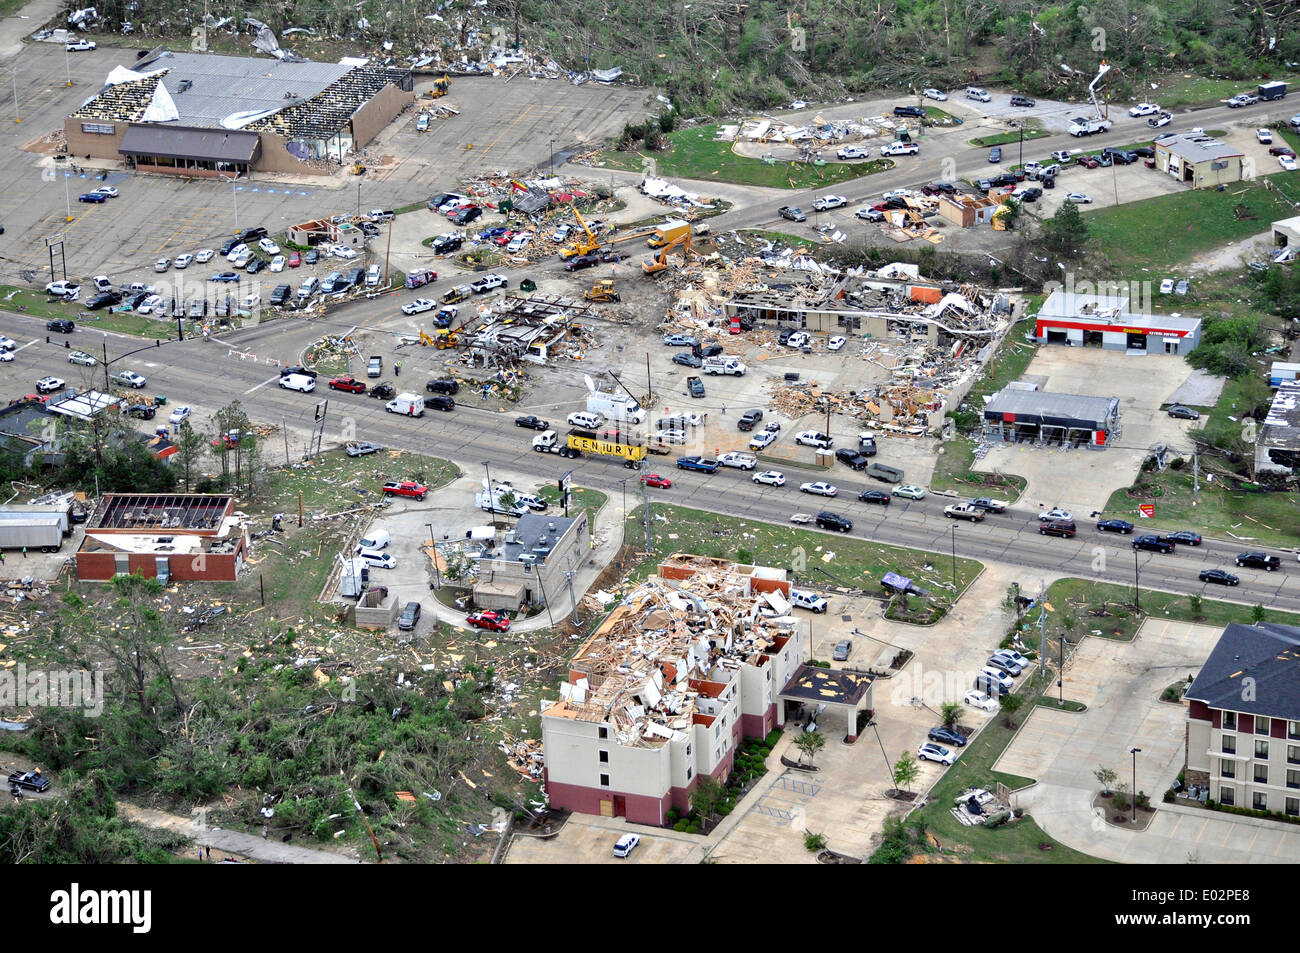 Aerial view of destruction to buildings by tornadoes that swept across the southern states killing 35 people April 28, 2014 in Tupelo, Mississippi. - Stock Image